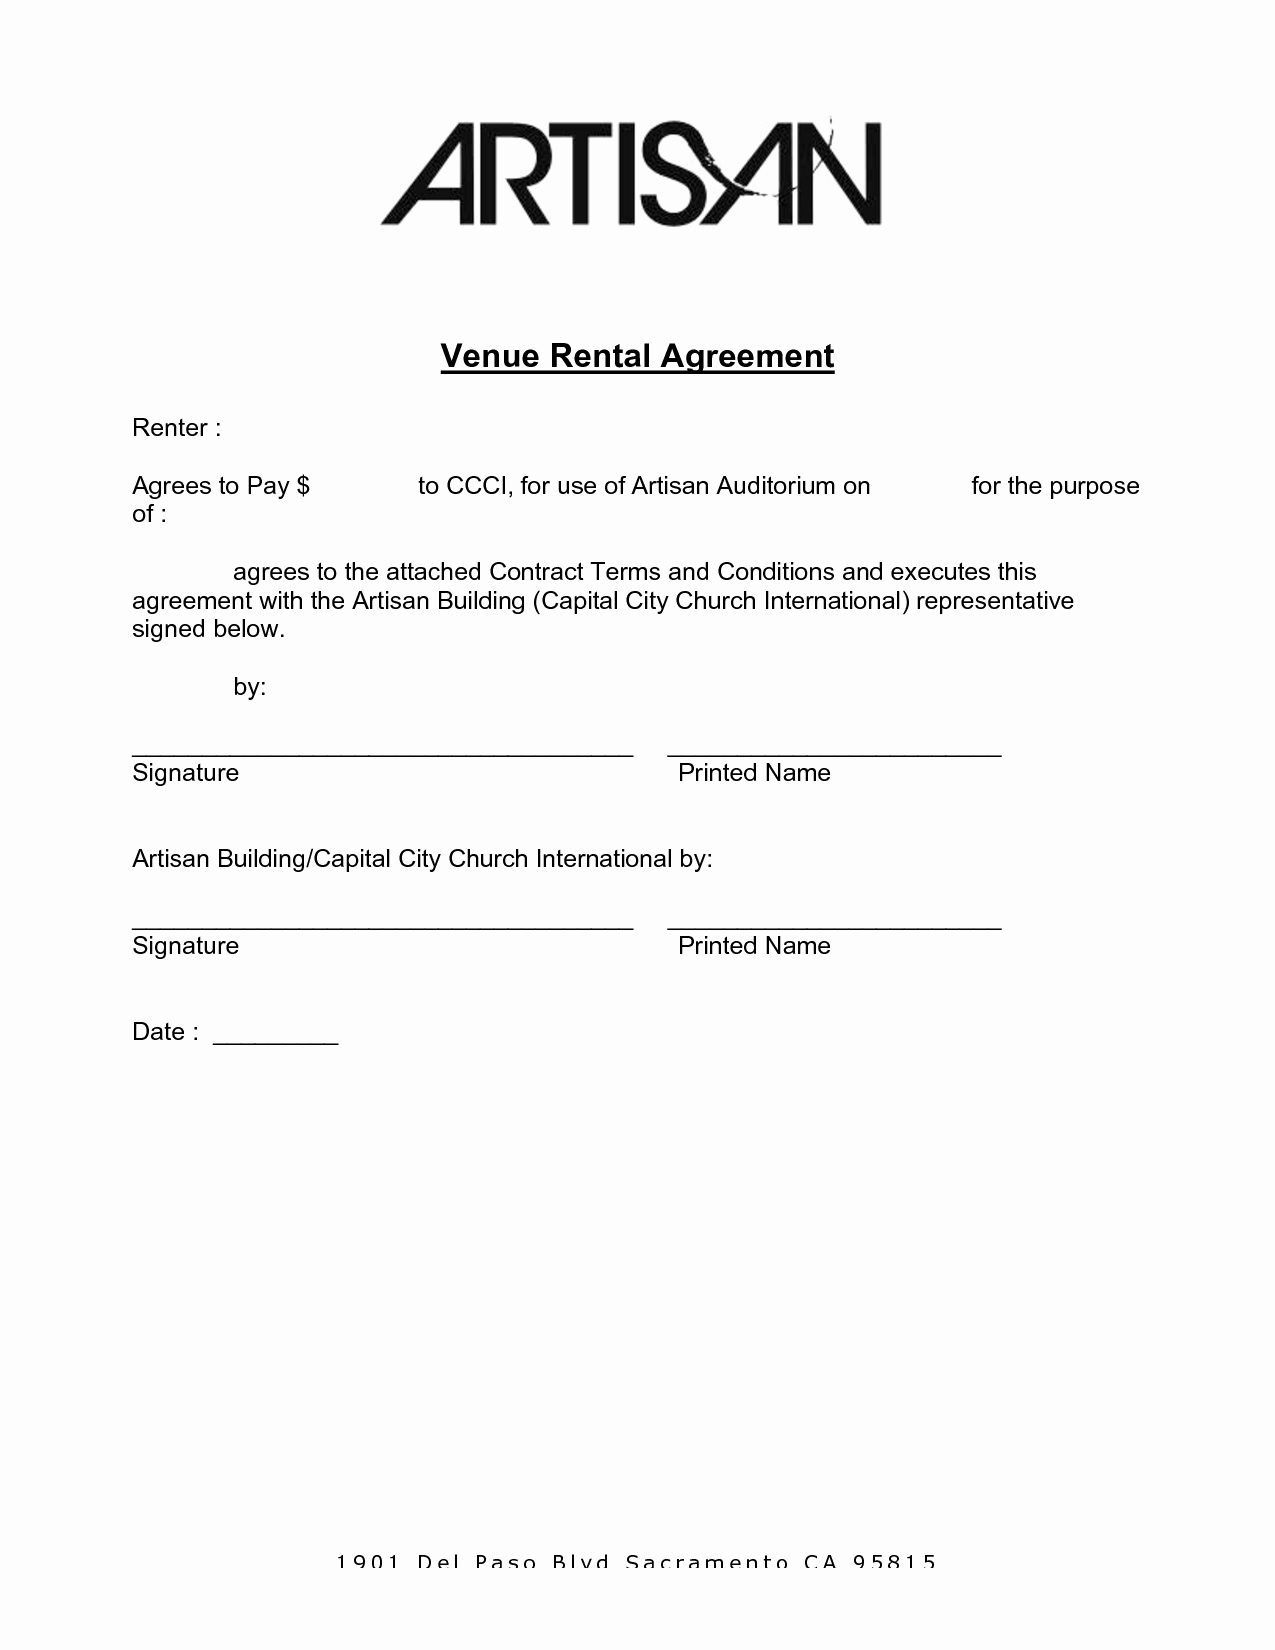 Venue Rental Agreement Template Unique Best S Of Venue Rental Contract Template Real